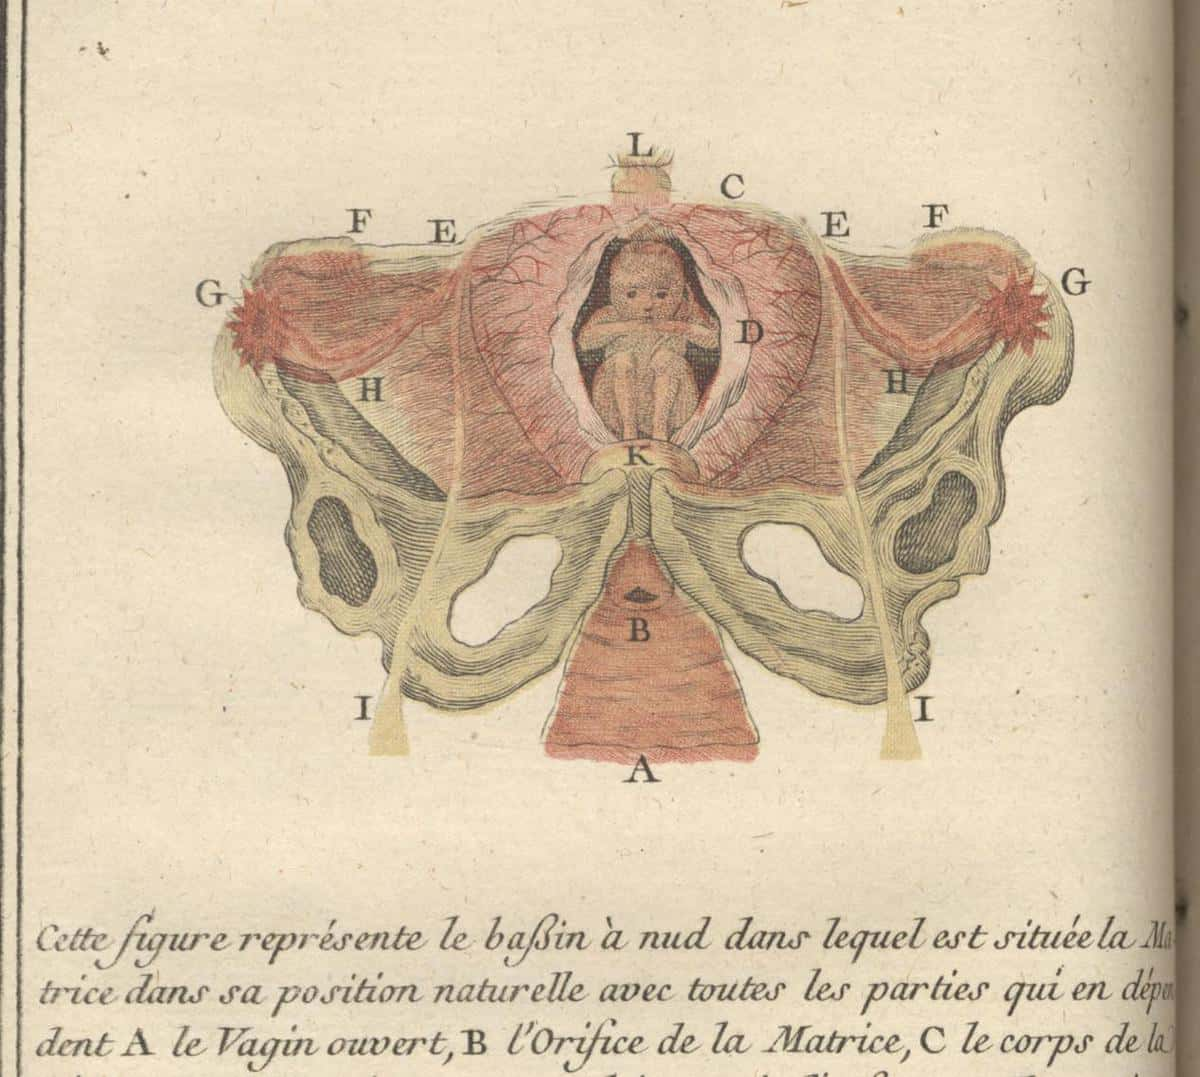 Le Boursier, a prominent Parisian midwife, first published the present work in 1759 without illustrations. The success of the book encouraged her to have later editions illustrated by Jean Robert […]